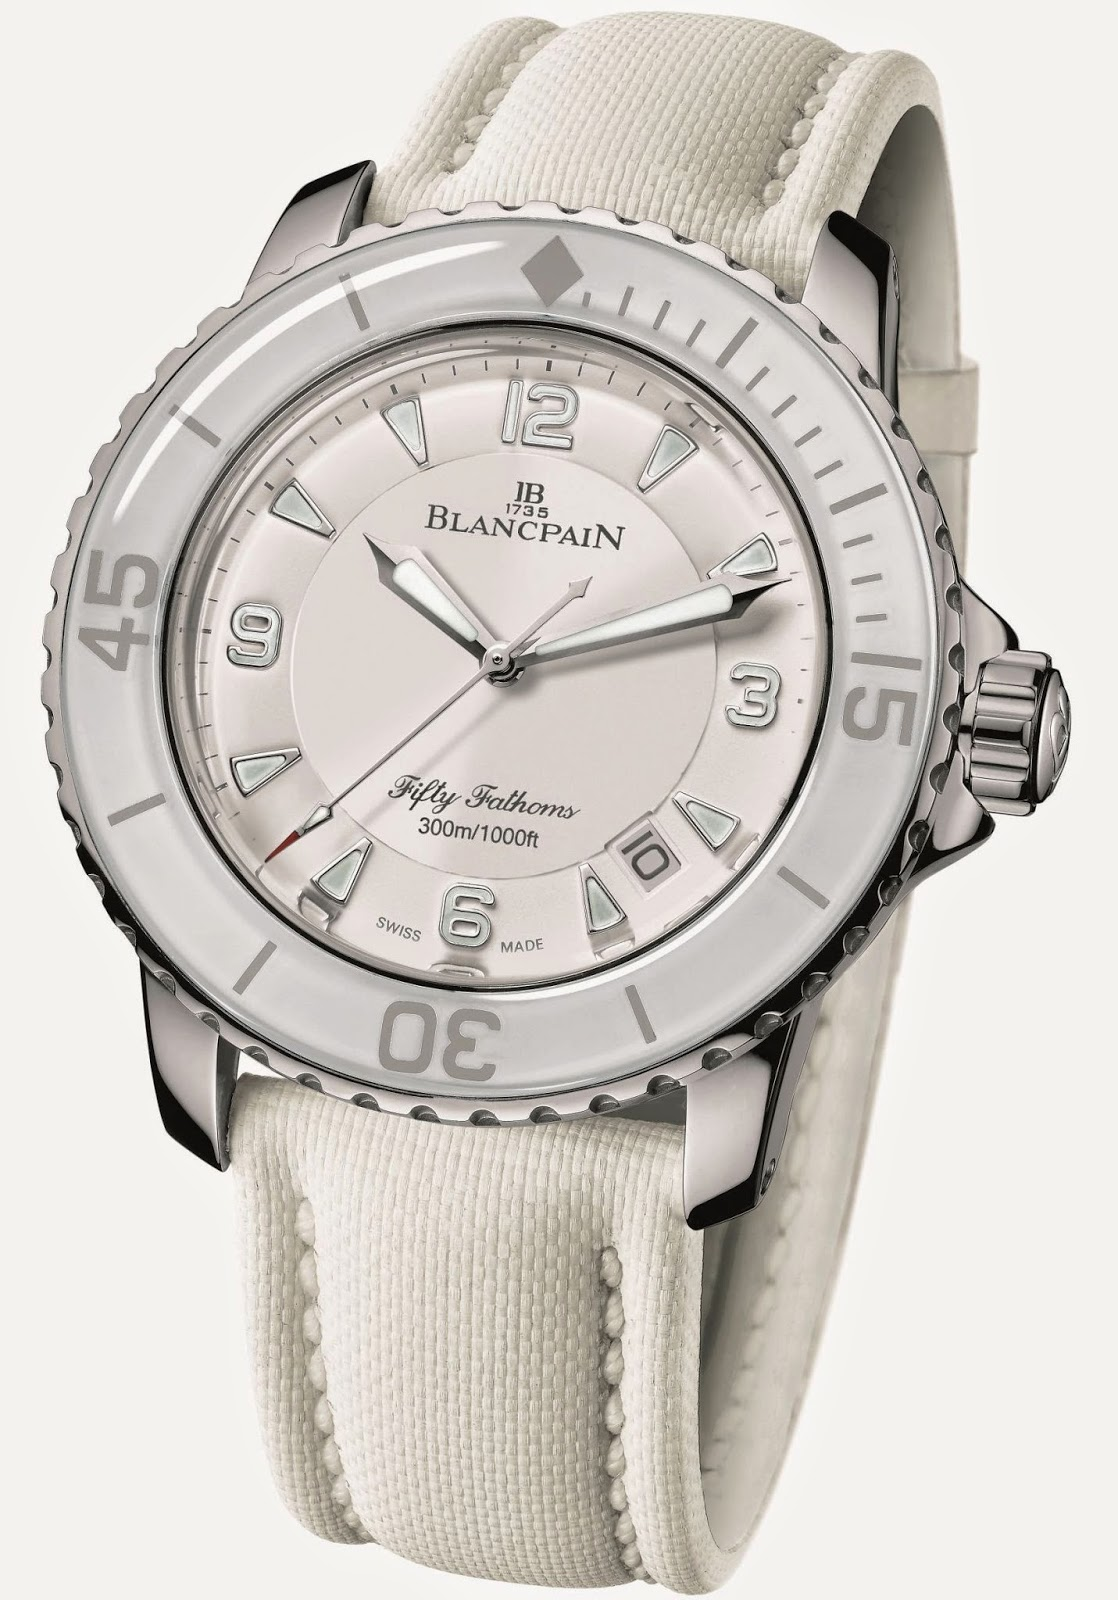 Blancpain Fifty Fathoms Automatique watch replica